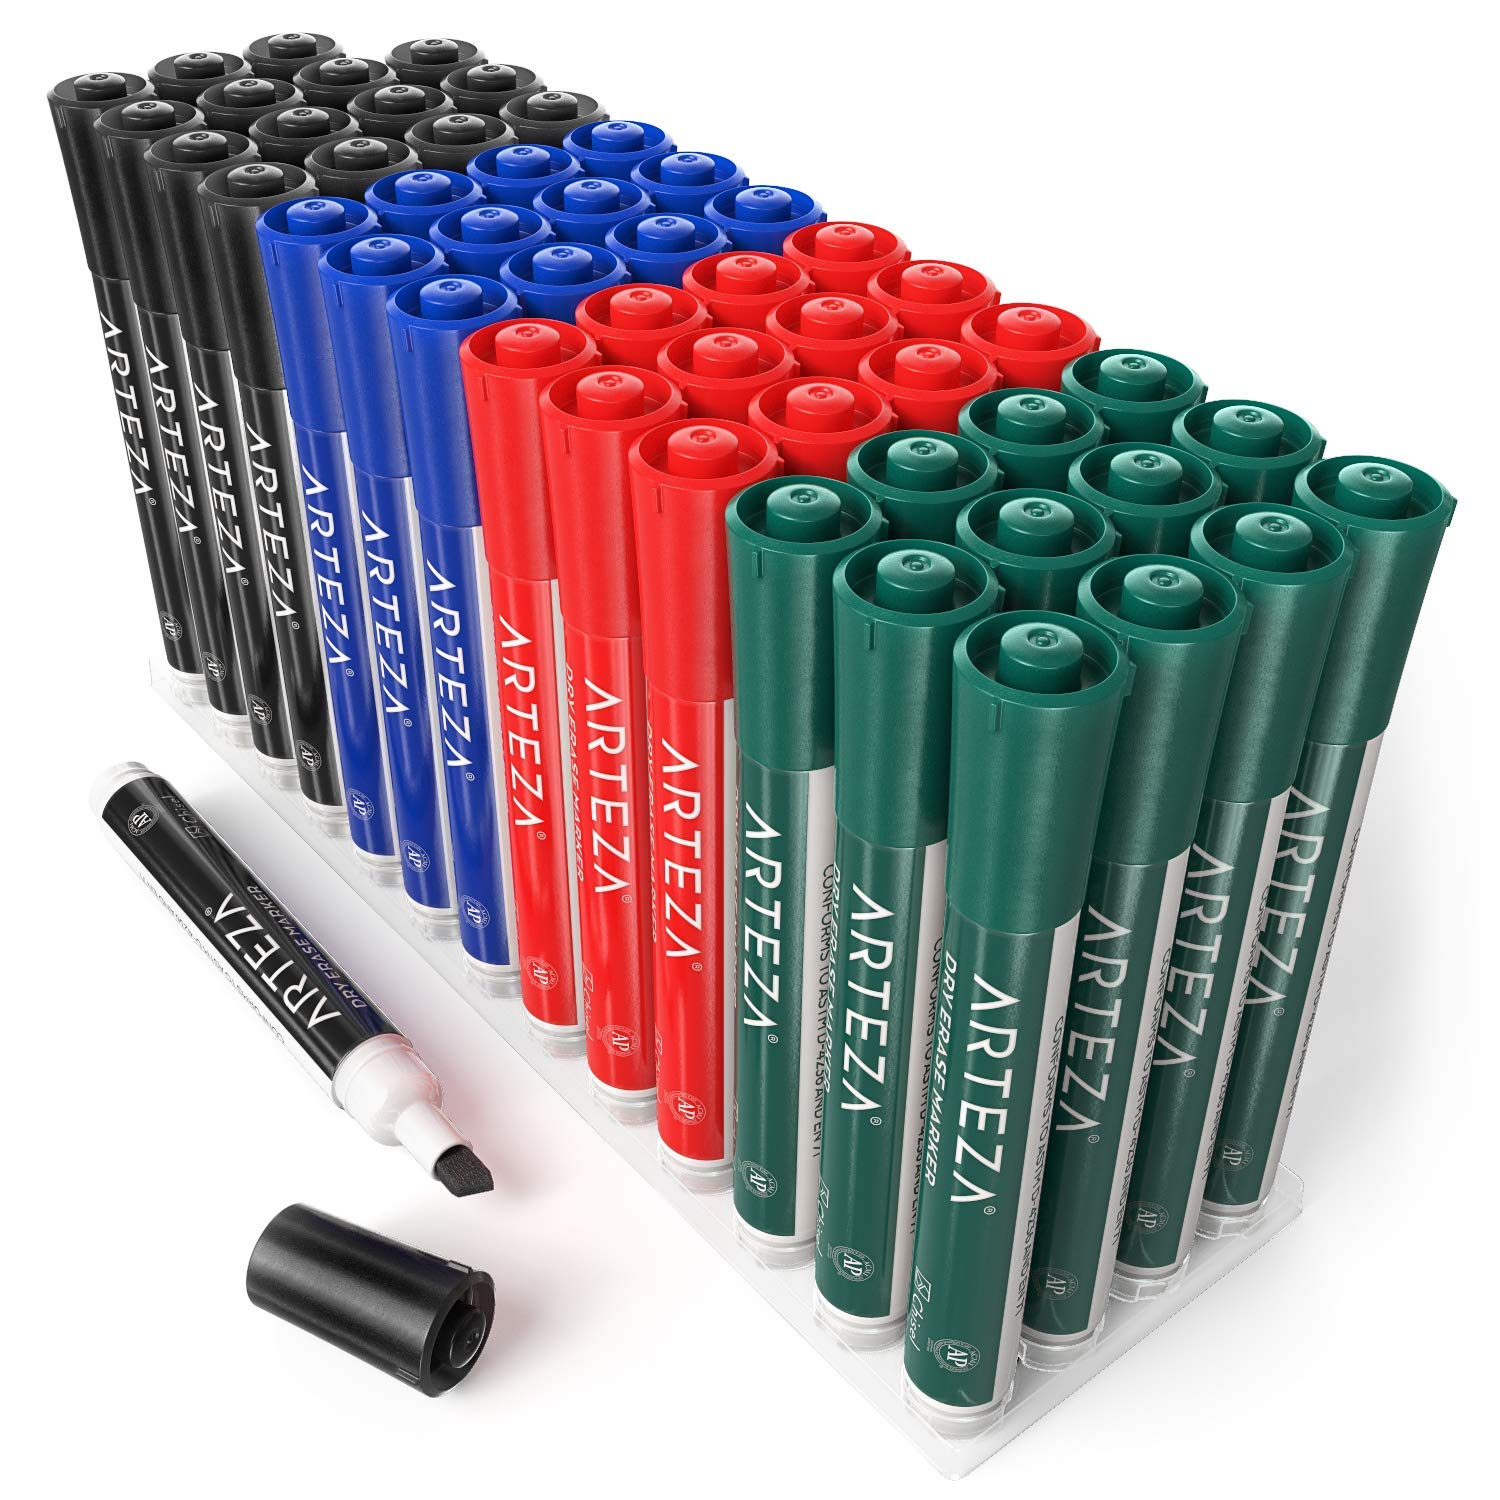 ARTEZA Dry Erase Markers, Bulk Pack of 52 (with Chisel Tip), 4 Assorted Colors with Low-Odor Ink, Whiteboard Pens is Perfect for School, Office, or Home by ARTEZA (Image #7)